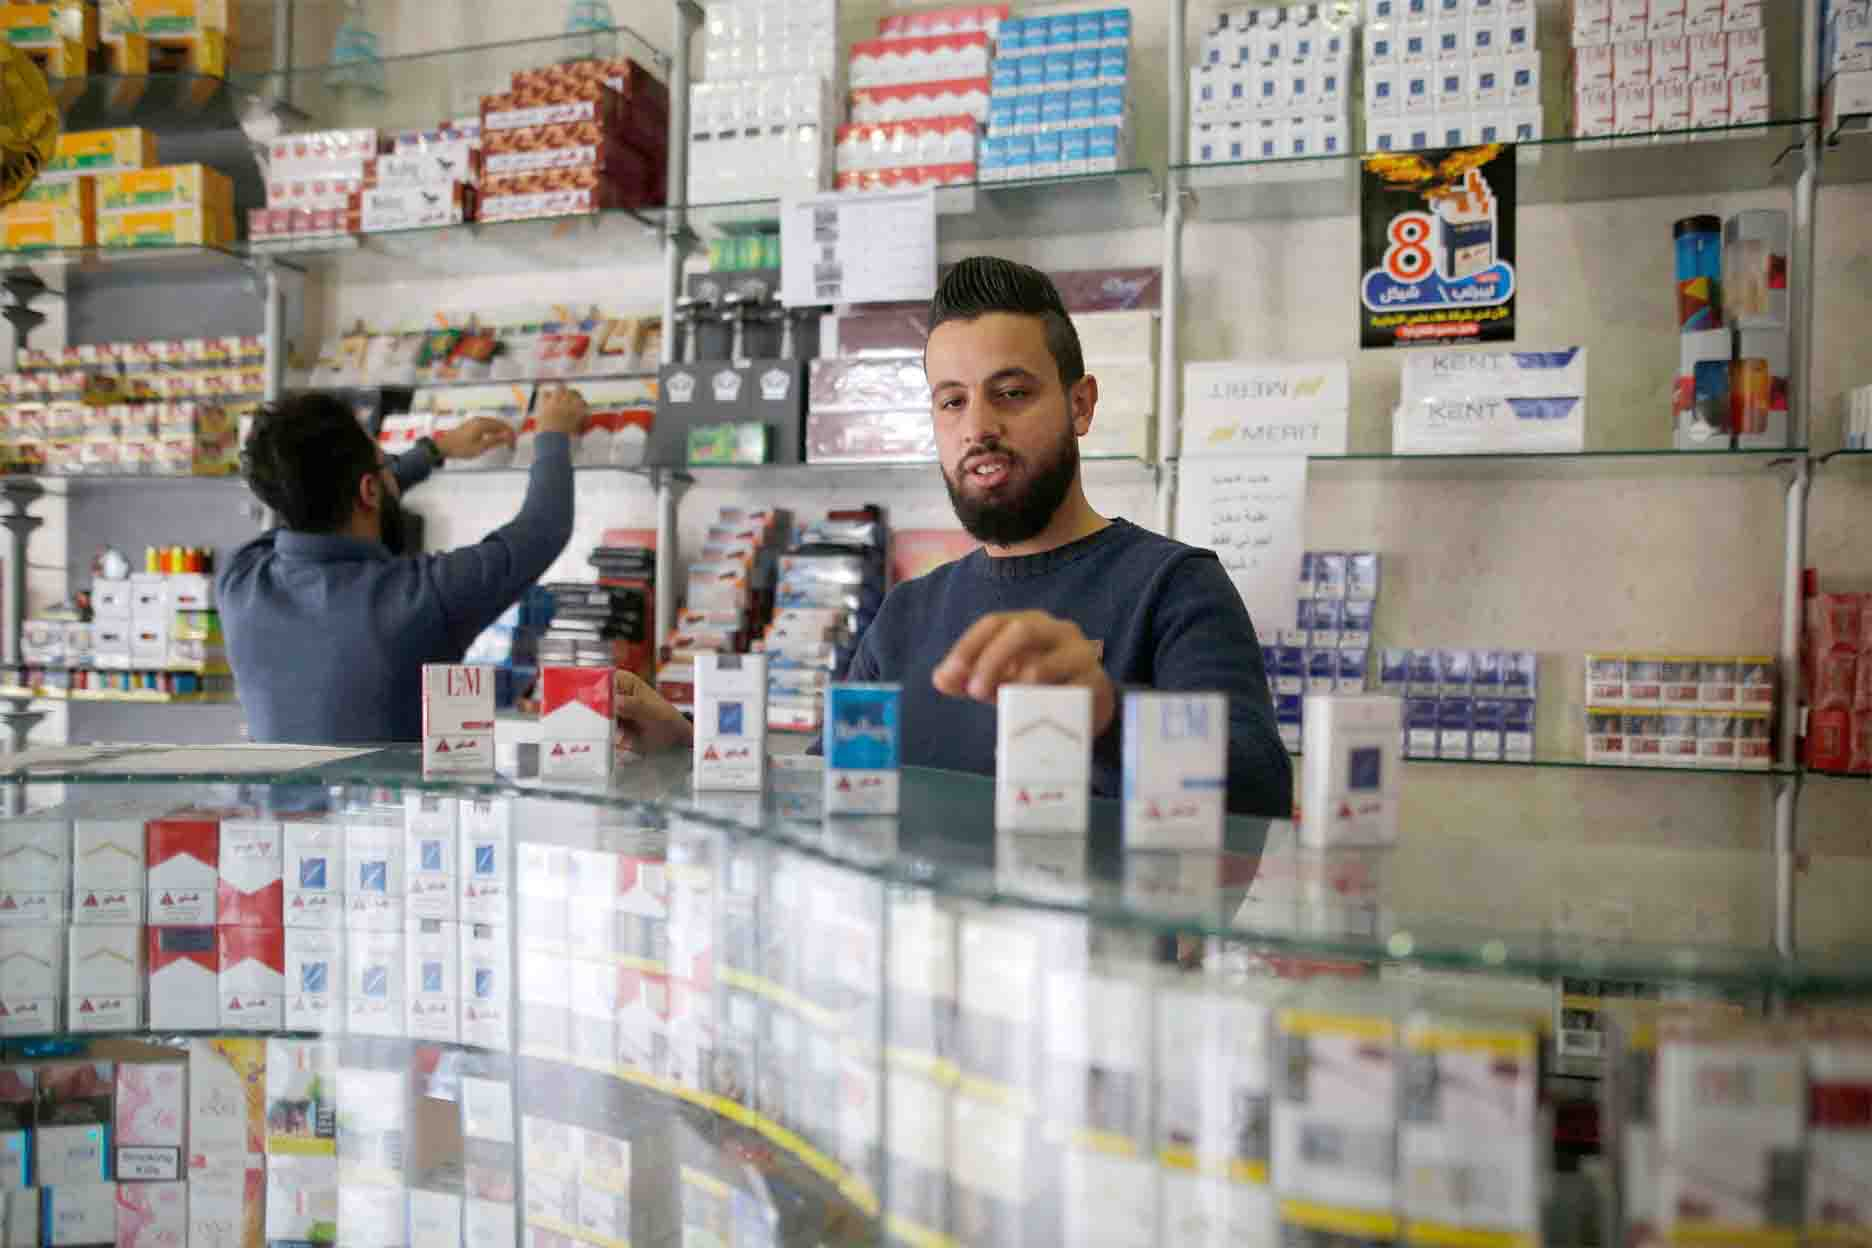 Palestinian vendors sell cigarettes at a shop in Gaza City. (AFP)